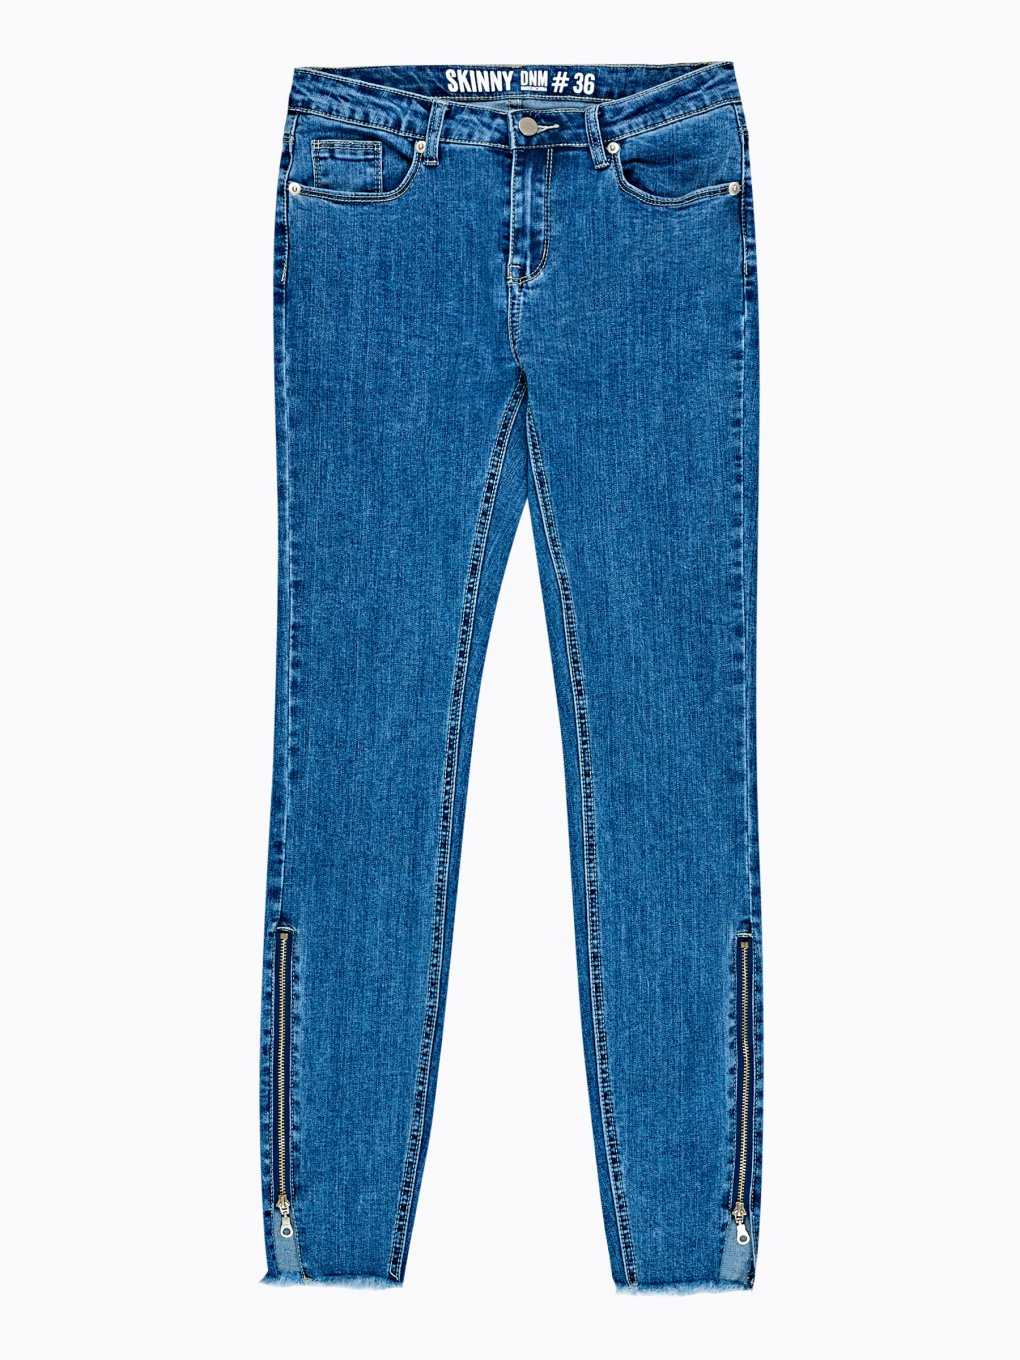 Skinny jeans with zipper on hem